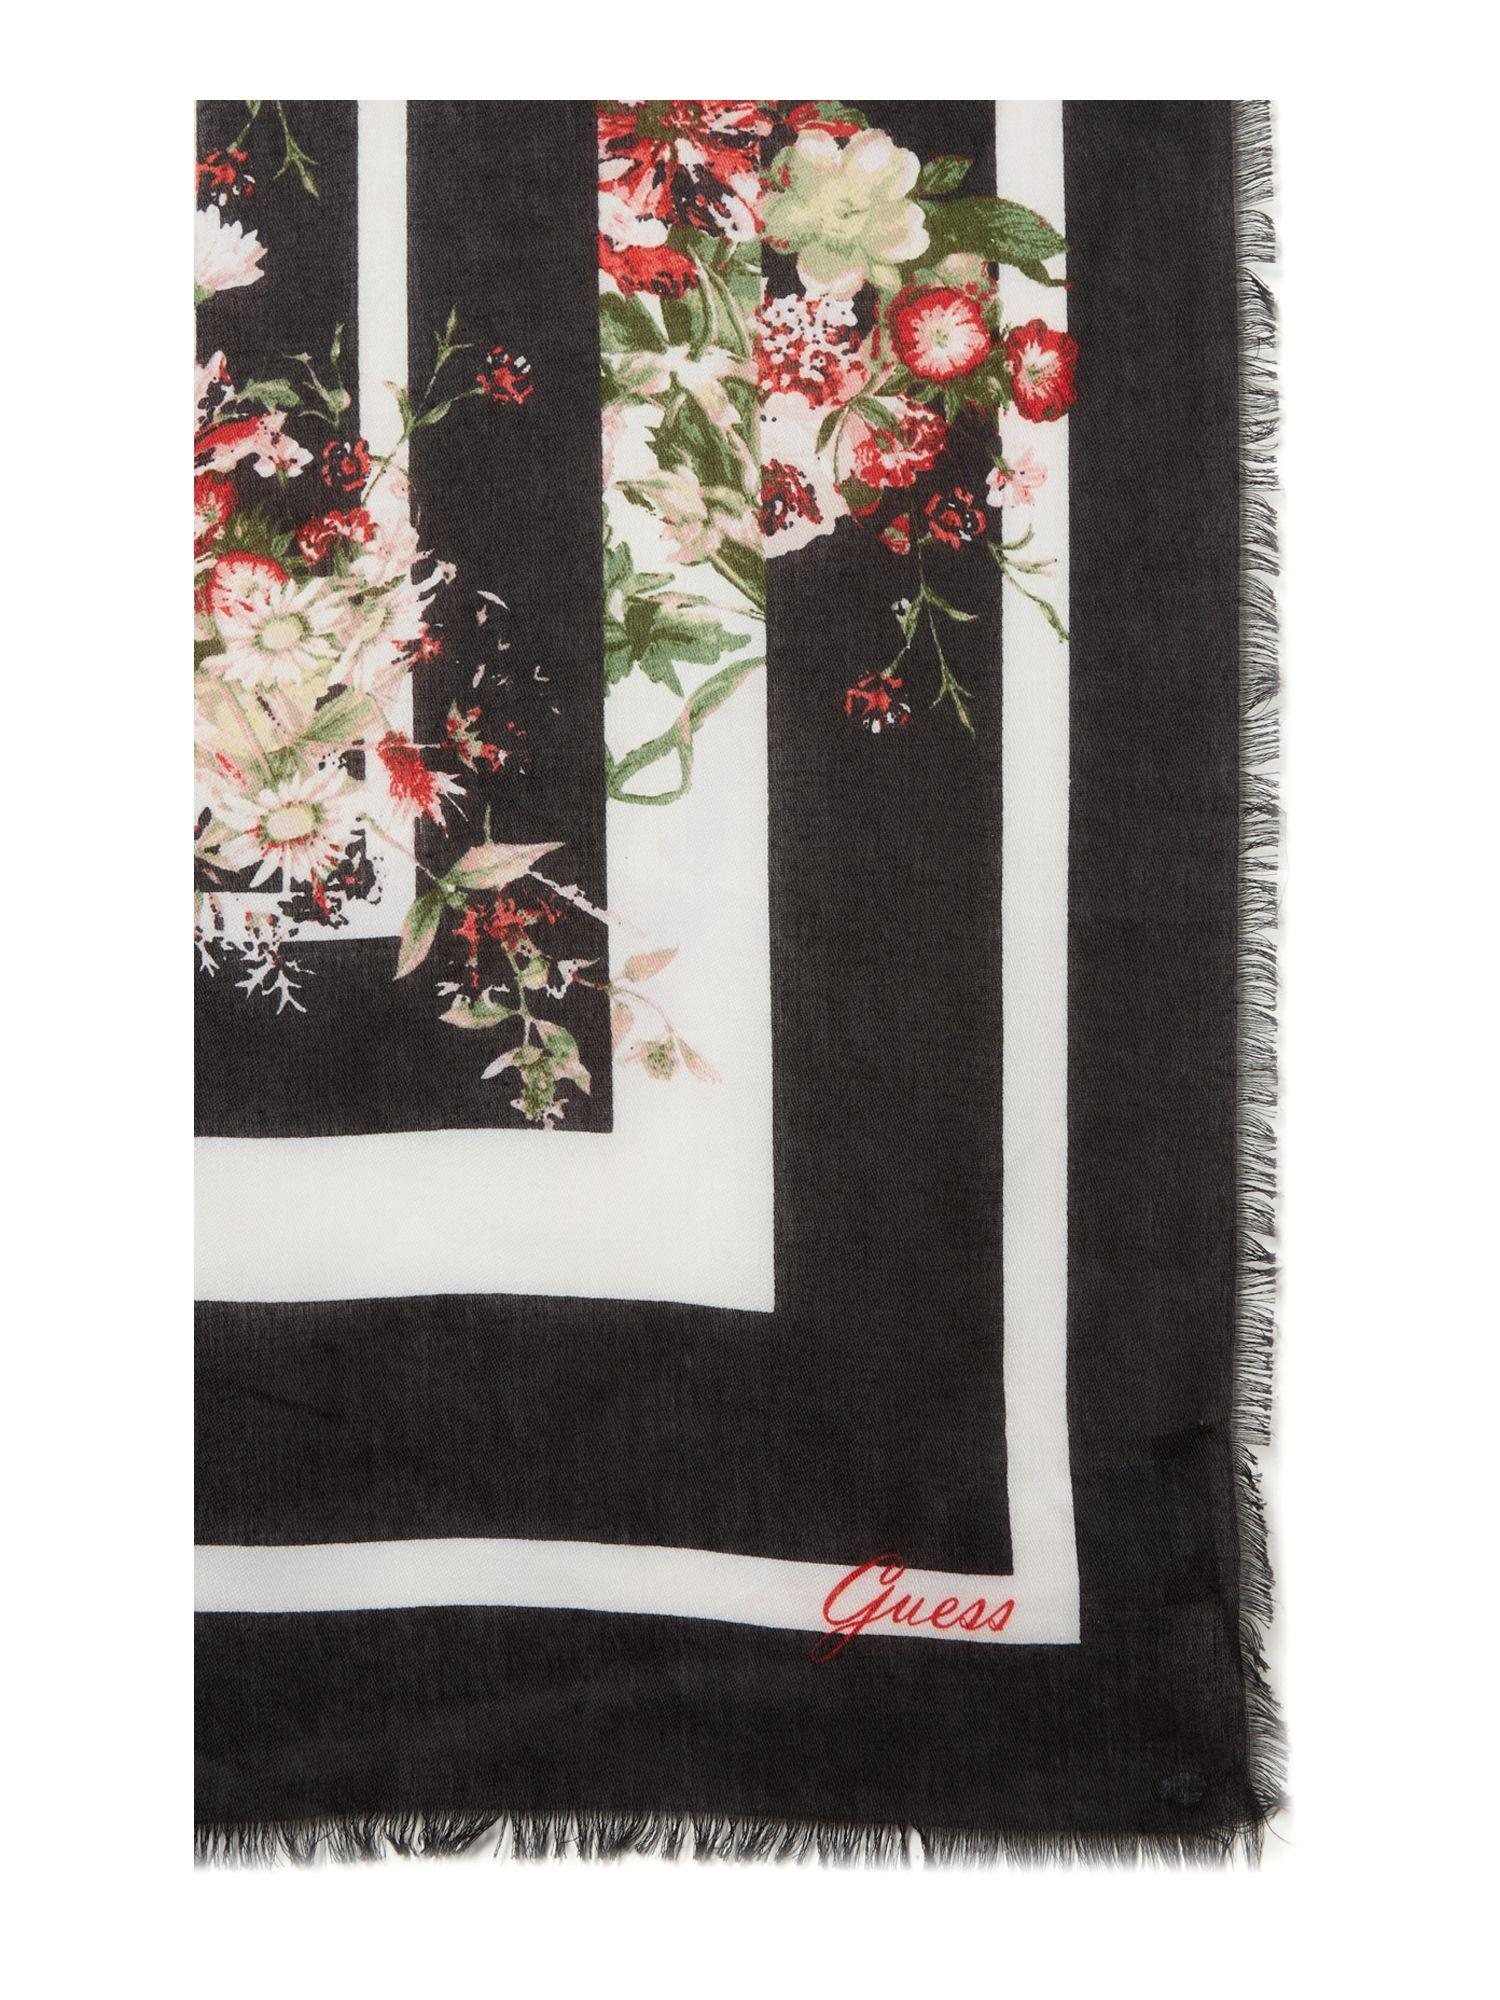 399a4847d9d Guess Large Floral And Leopard Print Scarf in Black - Lyst